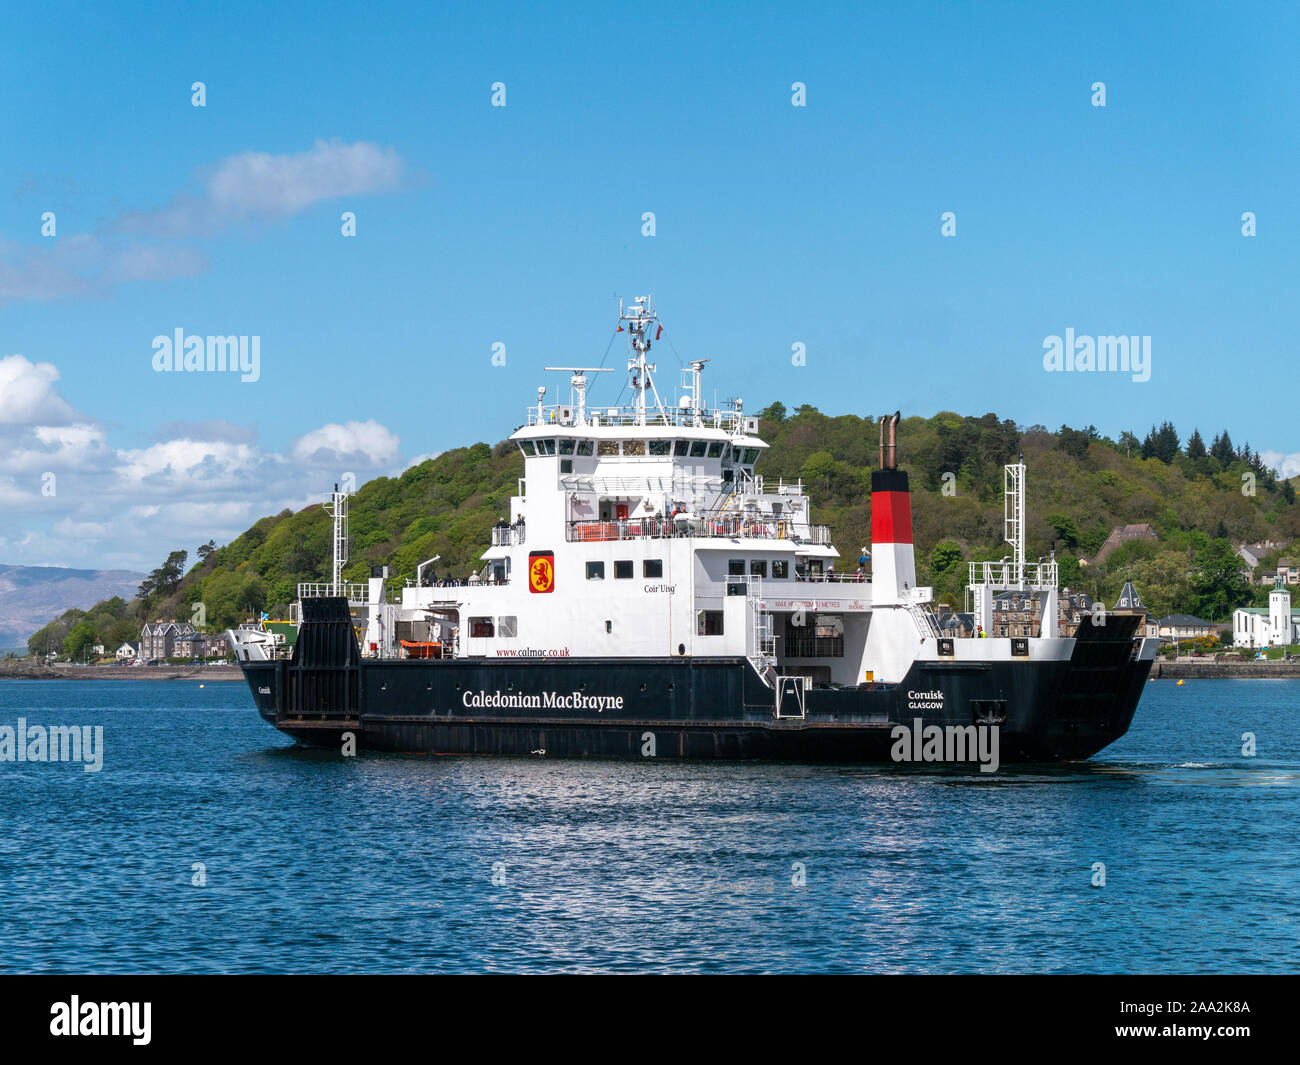 Caledonian Macbrayne Ferry MV Coruisk roll on roll off car and passenger ferry in Oban Harbour, Argyll and Bute, Scotland, UK. Stock Photo